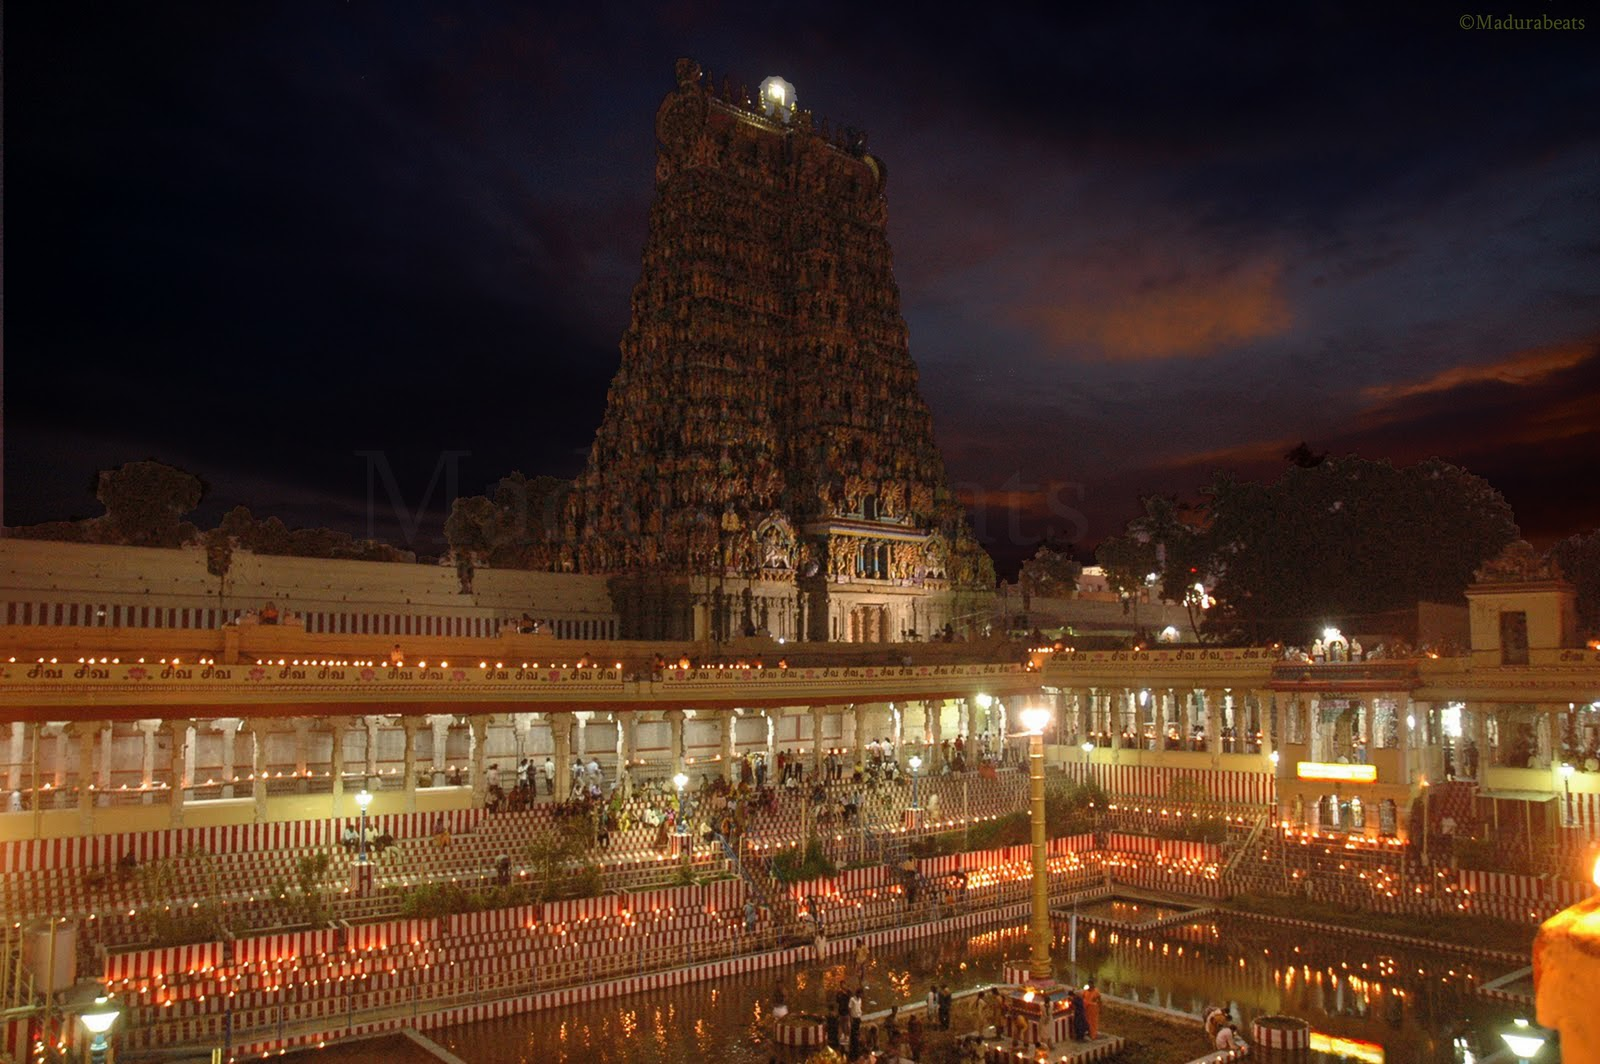 Madurai Meenakshi Amman temple at dark night